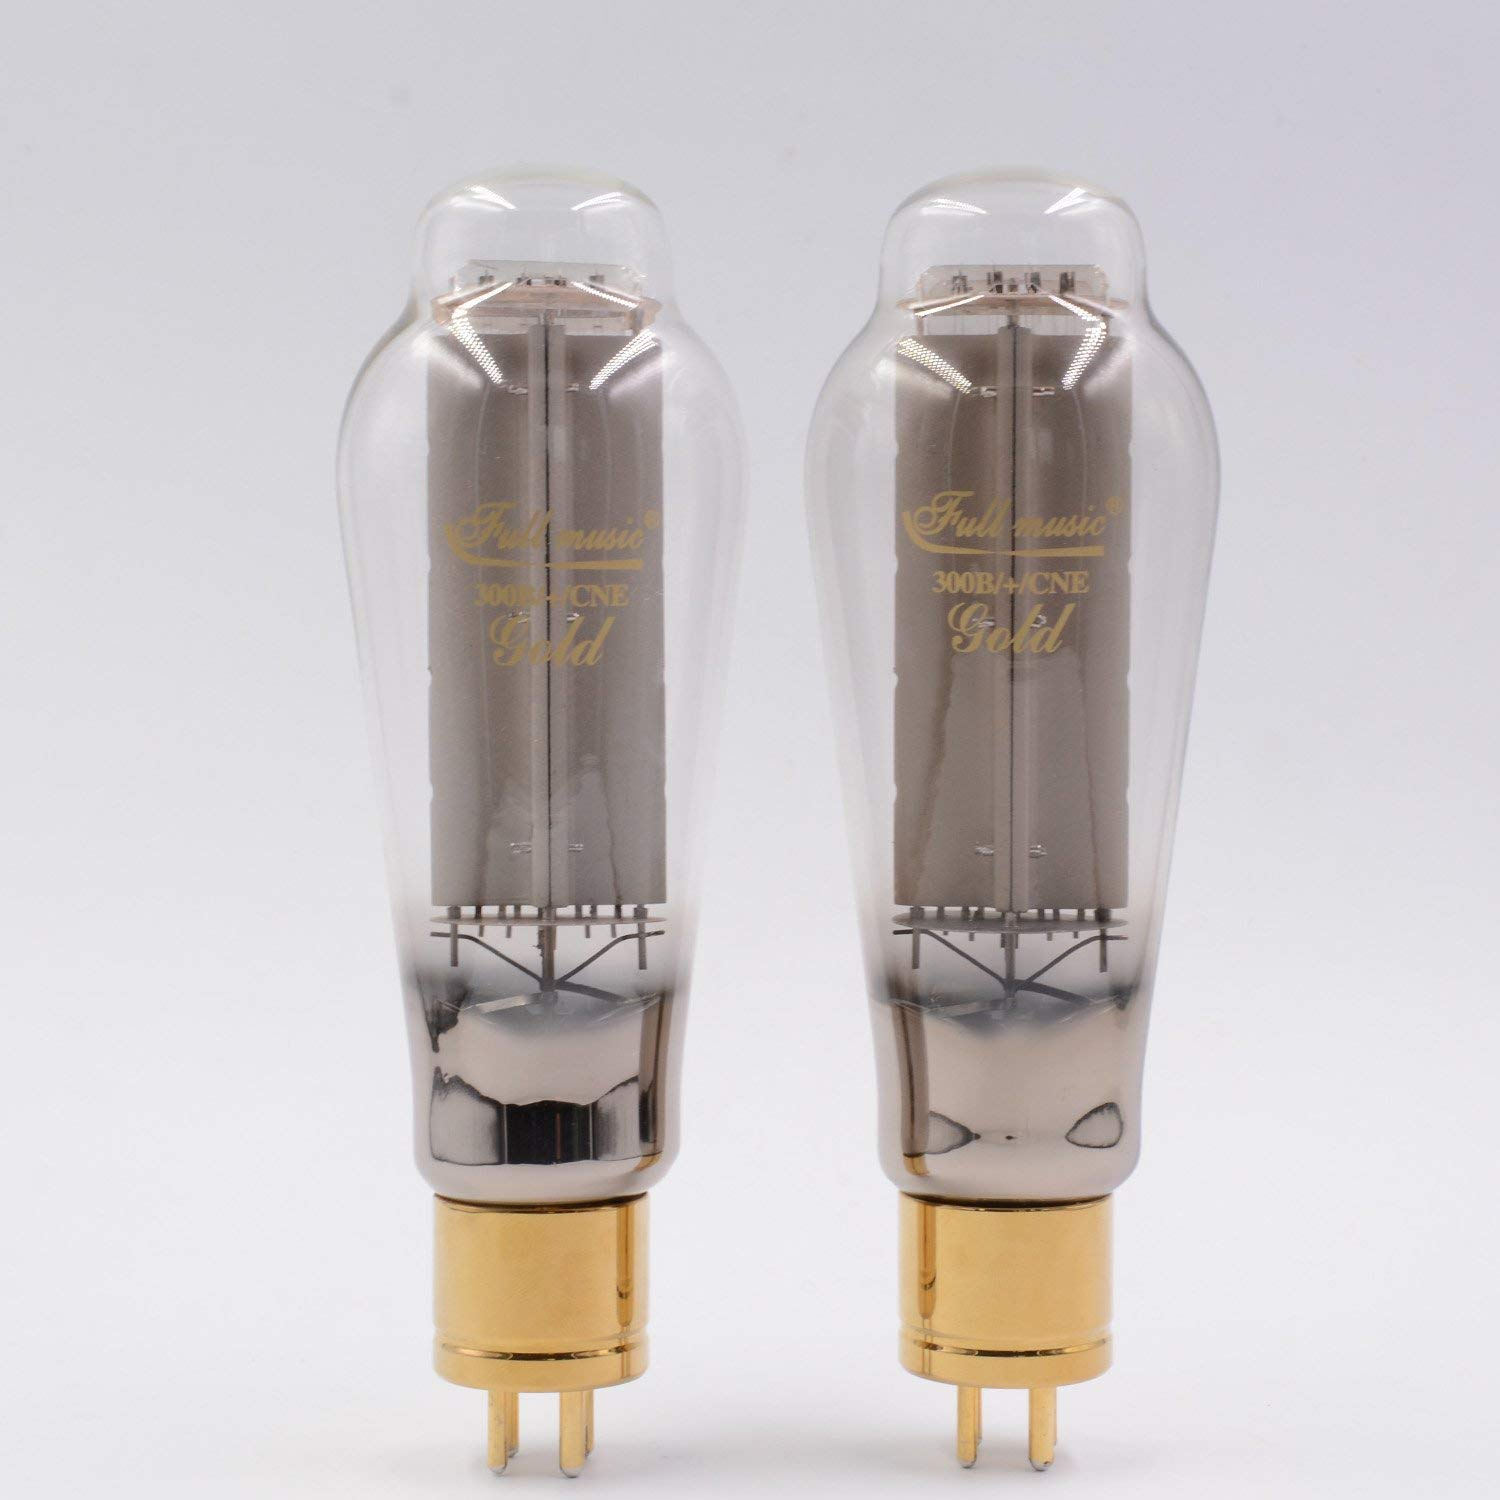 1PAIR TJ FULLMUSIC 300B/+/CNE GOLD Vintage Vacuum Tube Factory matched pair